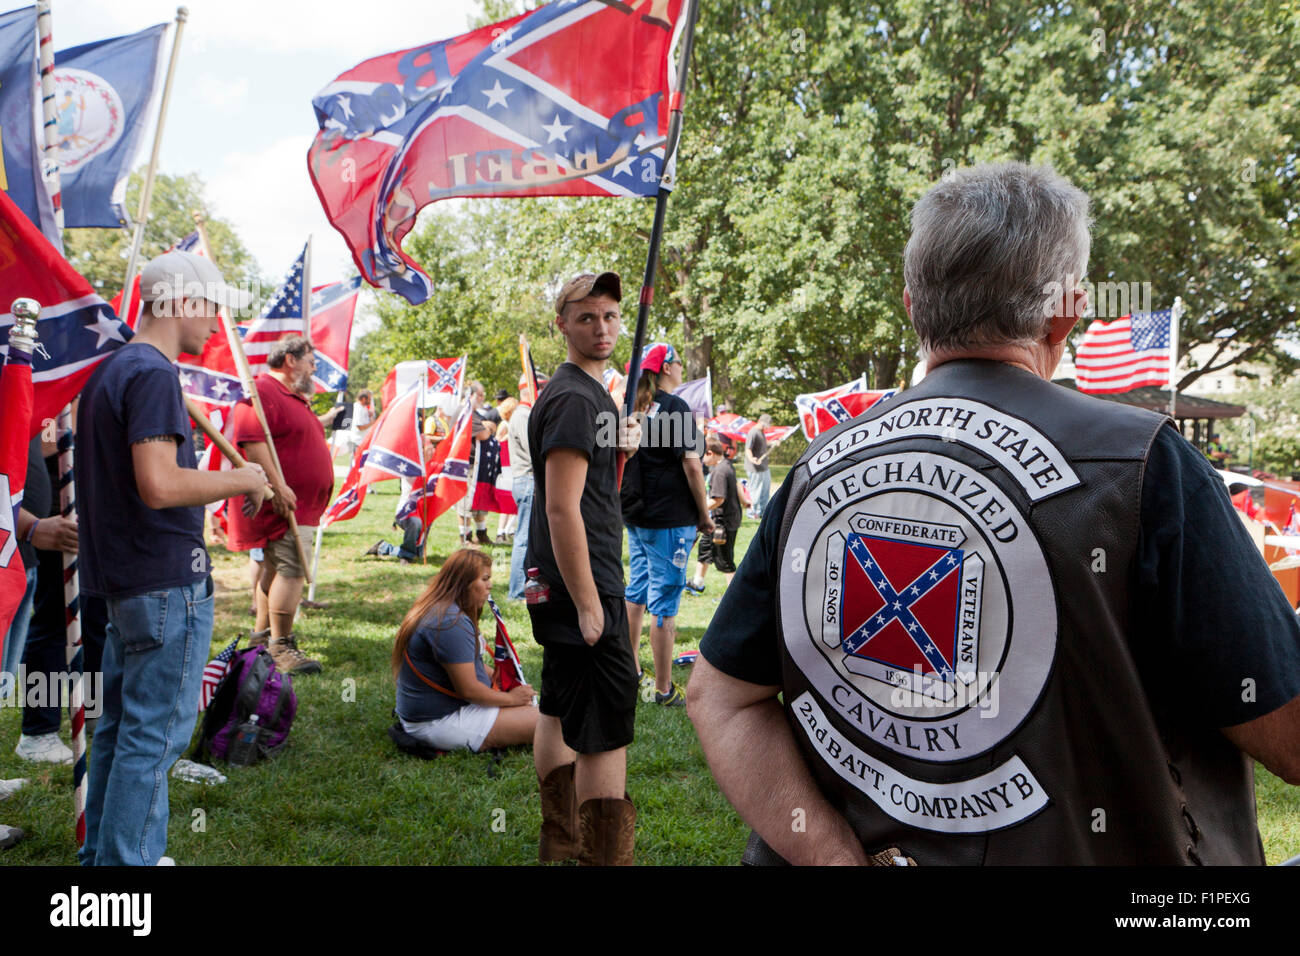 Washington, DC, USA. 5th September, 2015.The Sons of Confederate Veterans hold a rally for the Confederate flag Stock Photo